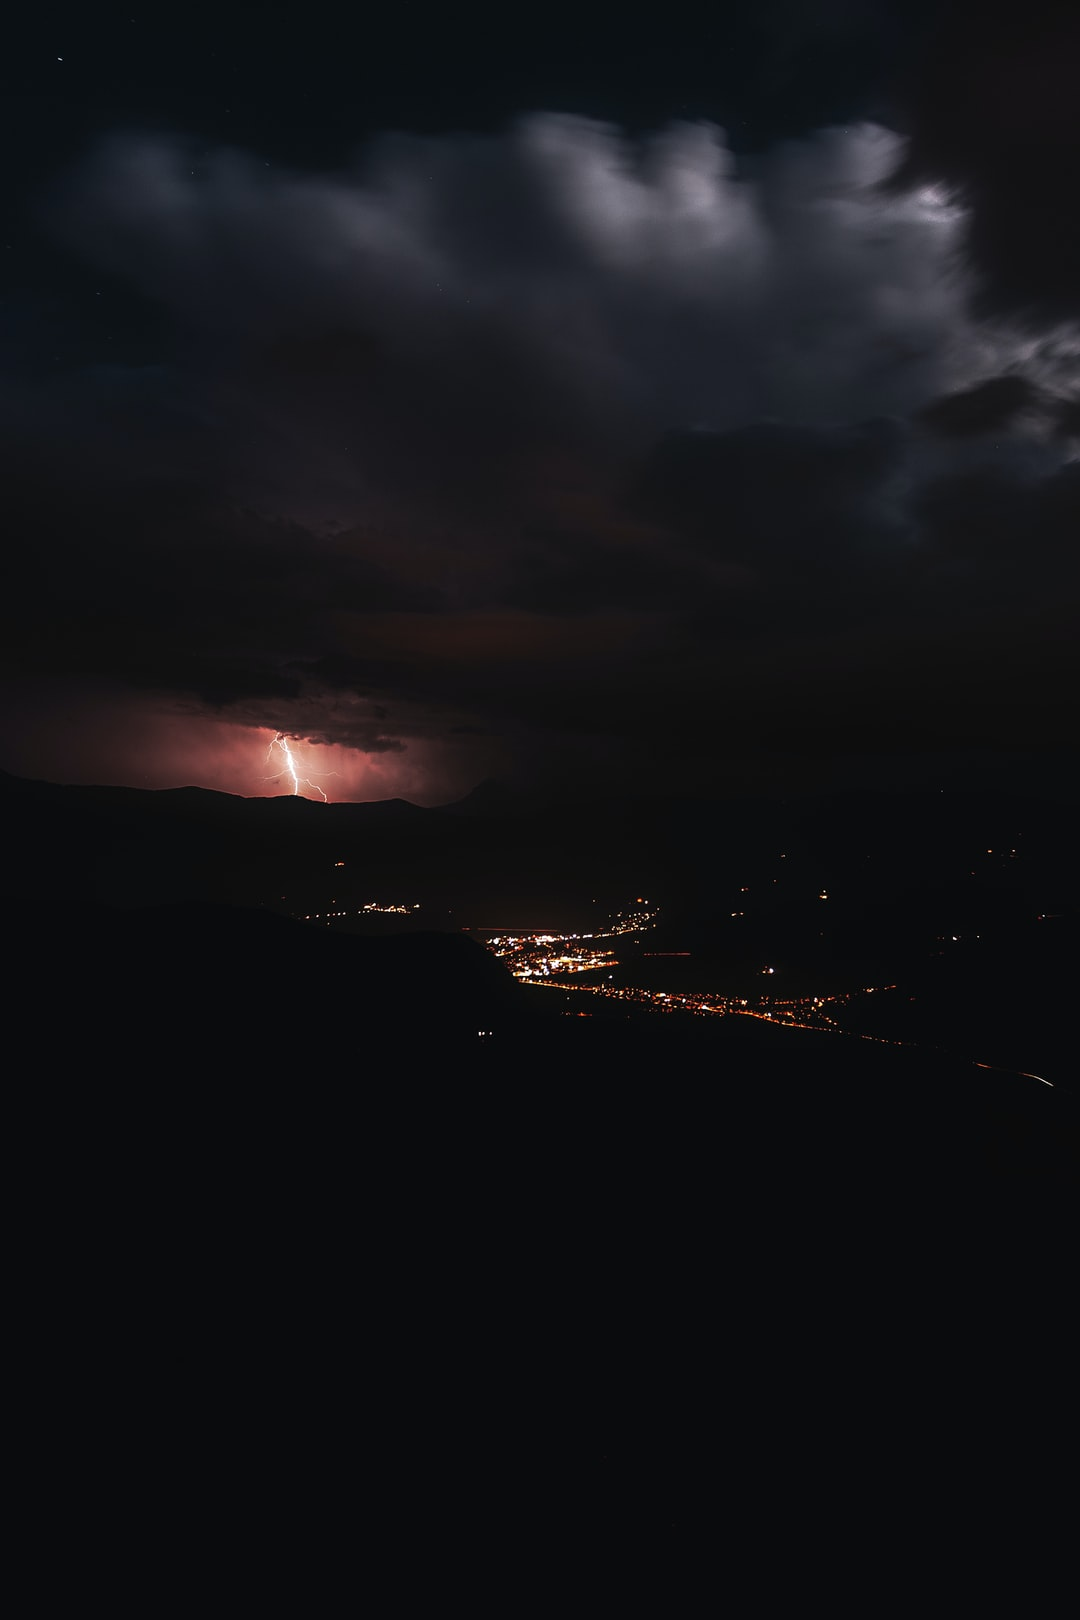 We were waiting for the lunar eclipse and the result is this picture! Unfortunately, we couldn't photograph the lunar eclipse, it was always cloudy and a little rainy. A thunderstorm raged in the distance!